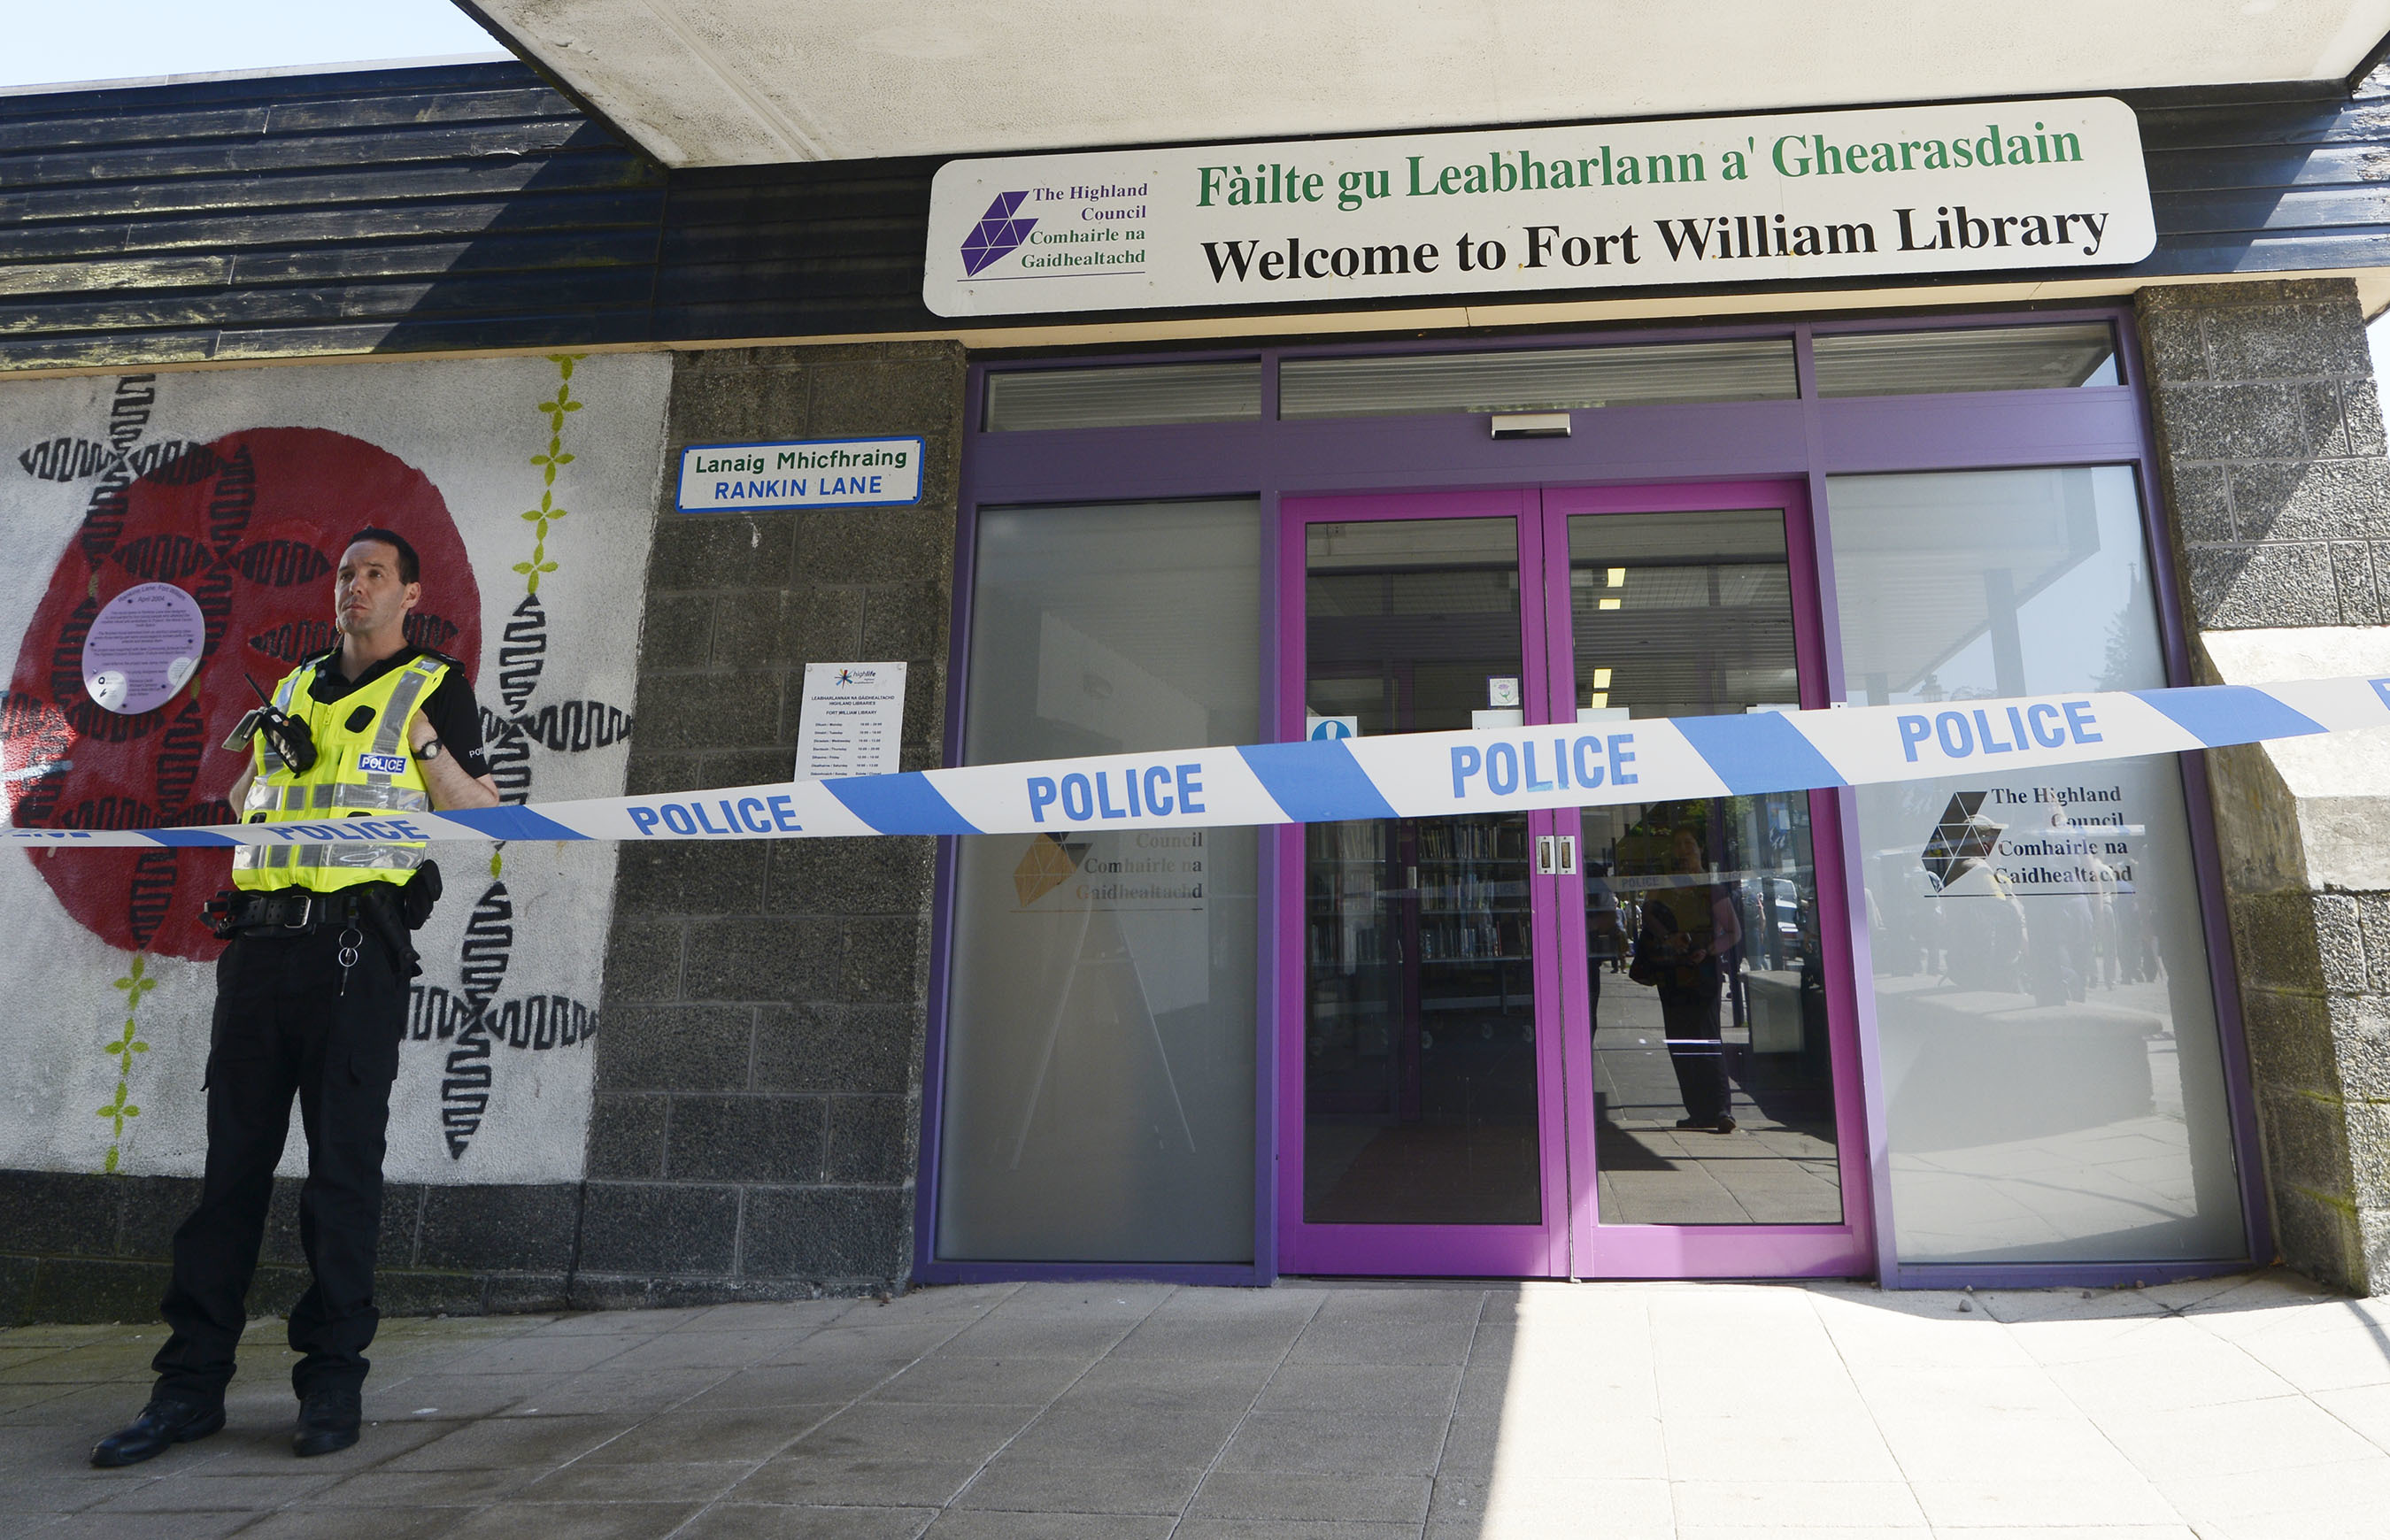 Police cordon seals off Fort William Library after being called to a gun incident inside